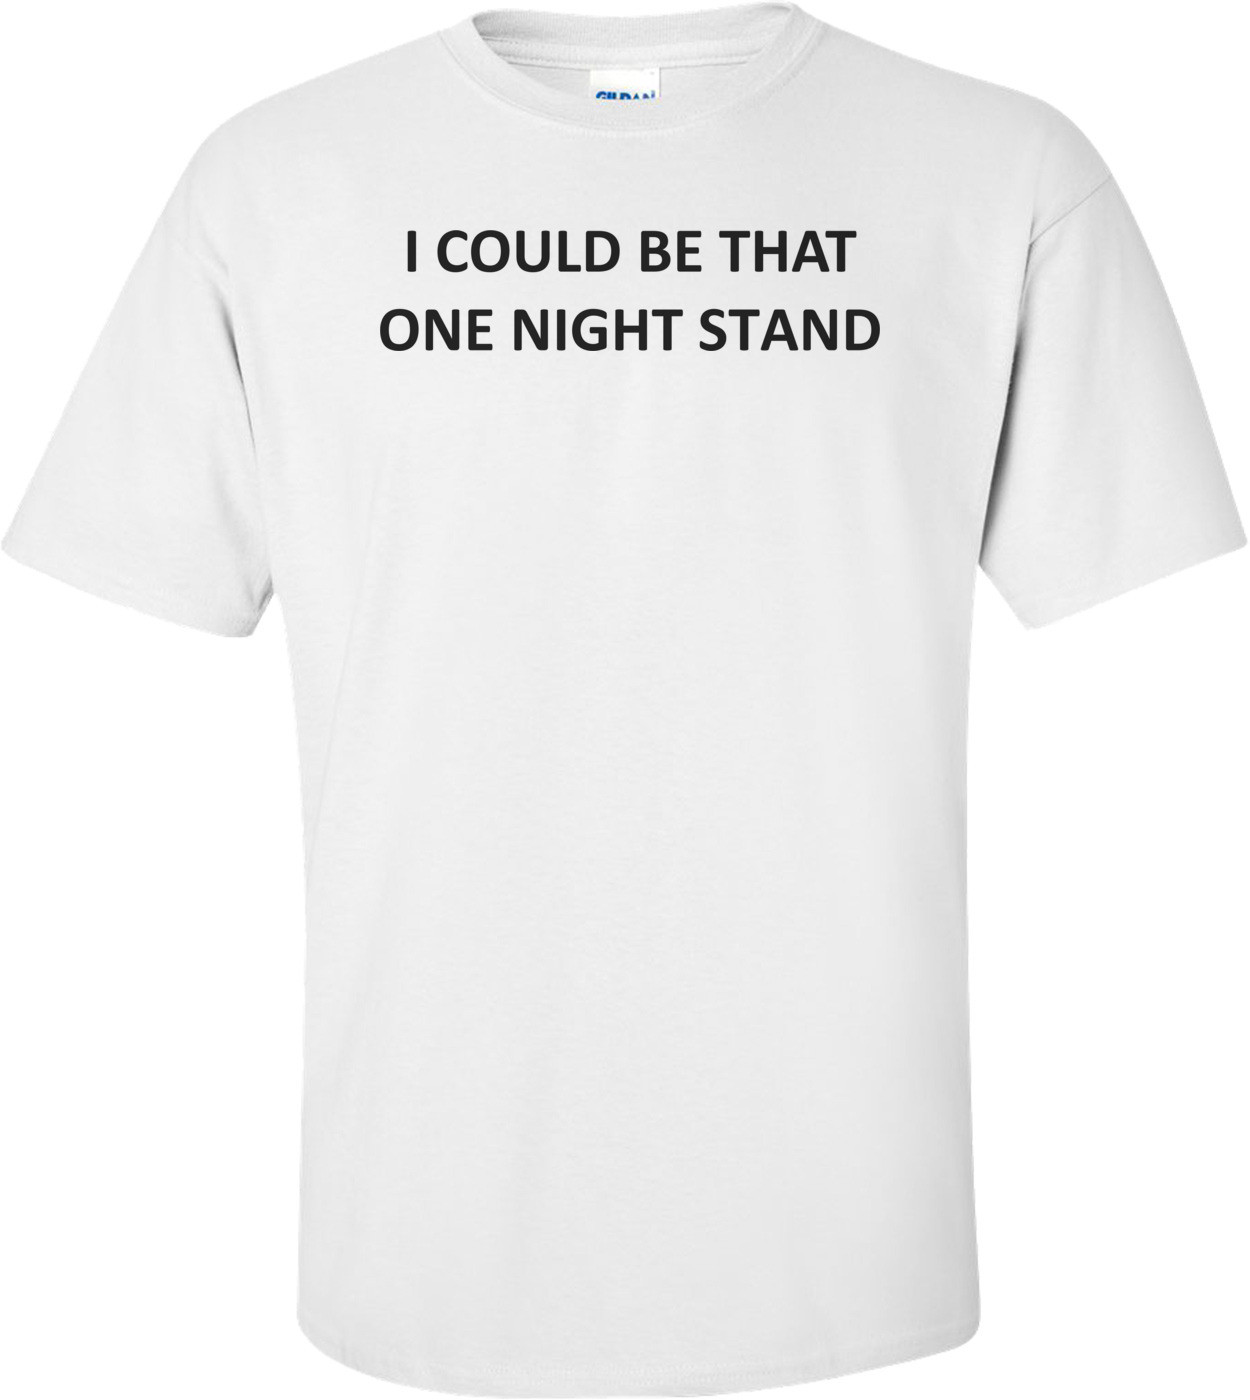 I COULD BE THAT ONE NIGHT STAND Shirt